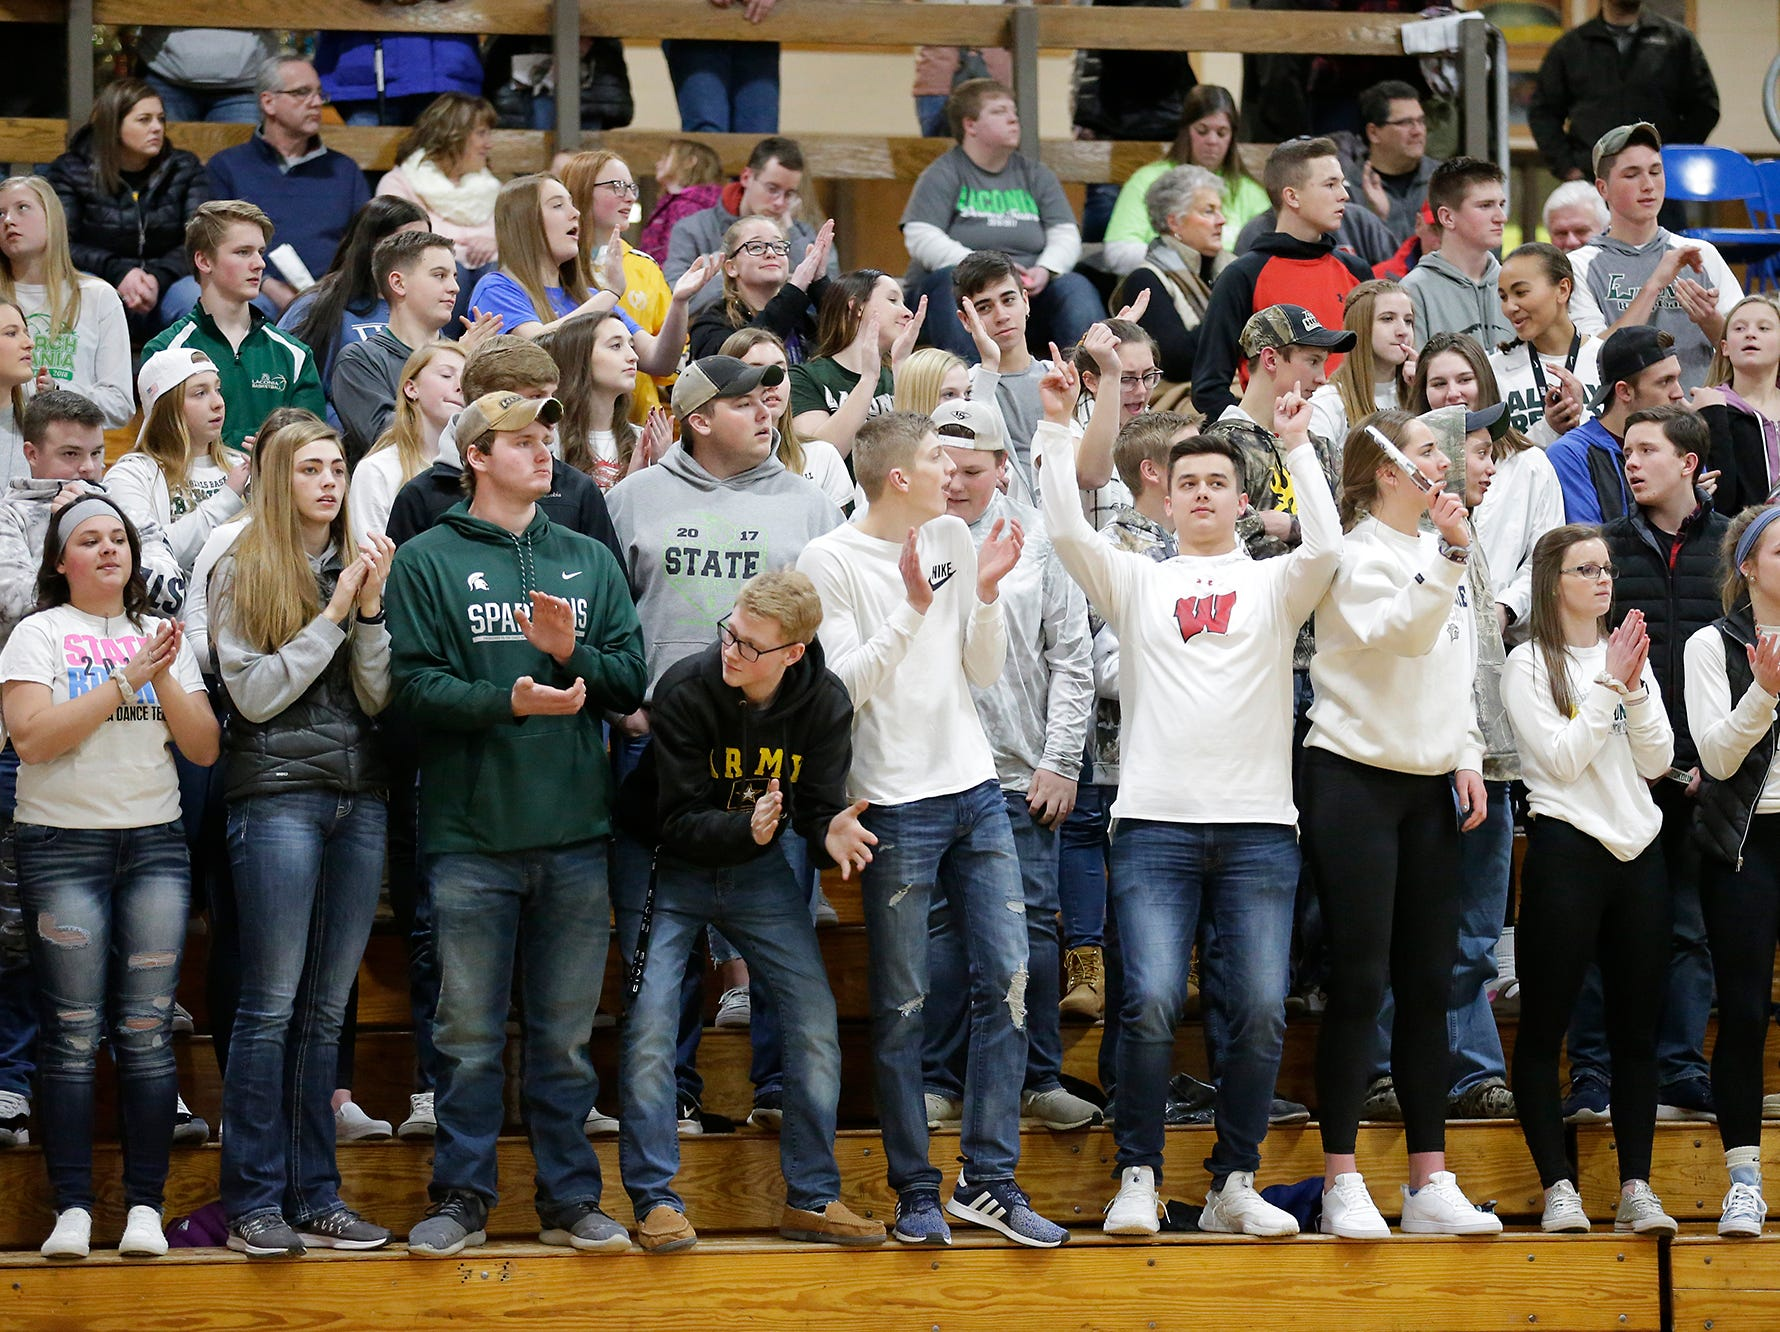 Laconia High School boys basketball fans celebrate a basket against Mayville High School during their game Friday, January 25, 2019 in Rosendale. Laconia won the game 80-54. Doug Raflik/USA TODAY NETWORK-Wisconsin